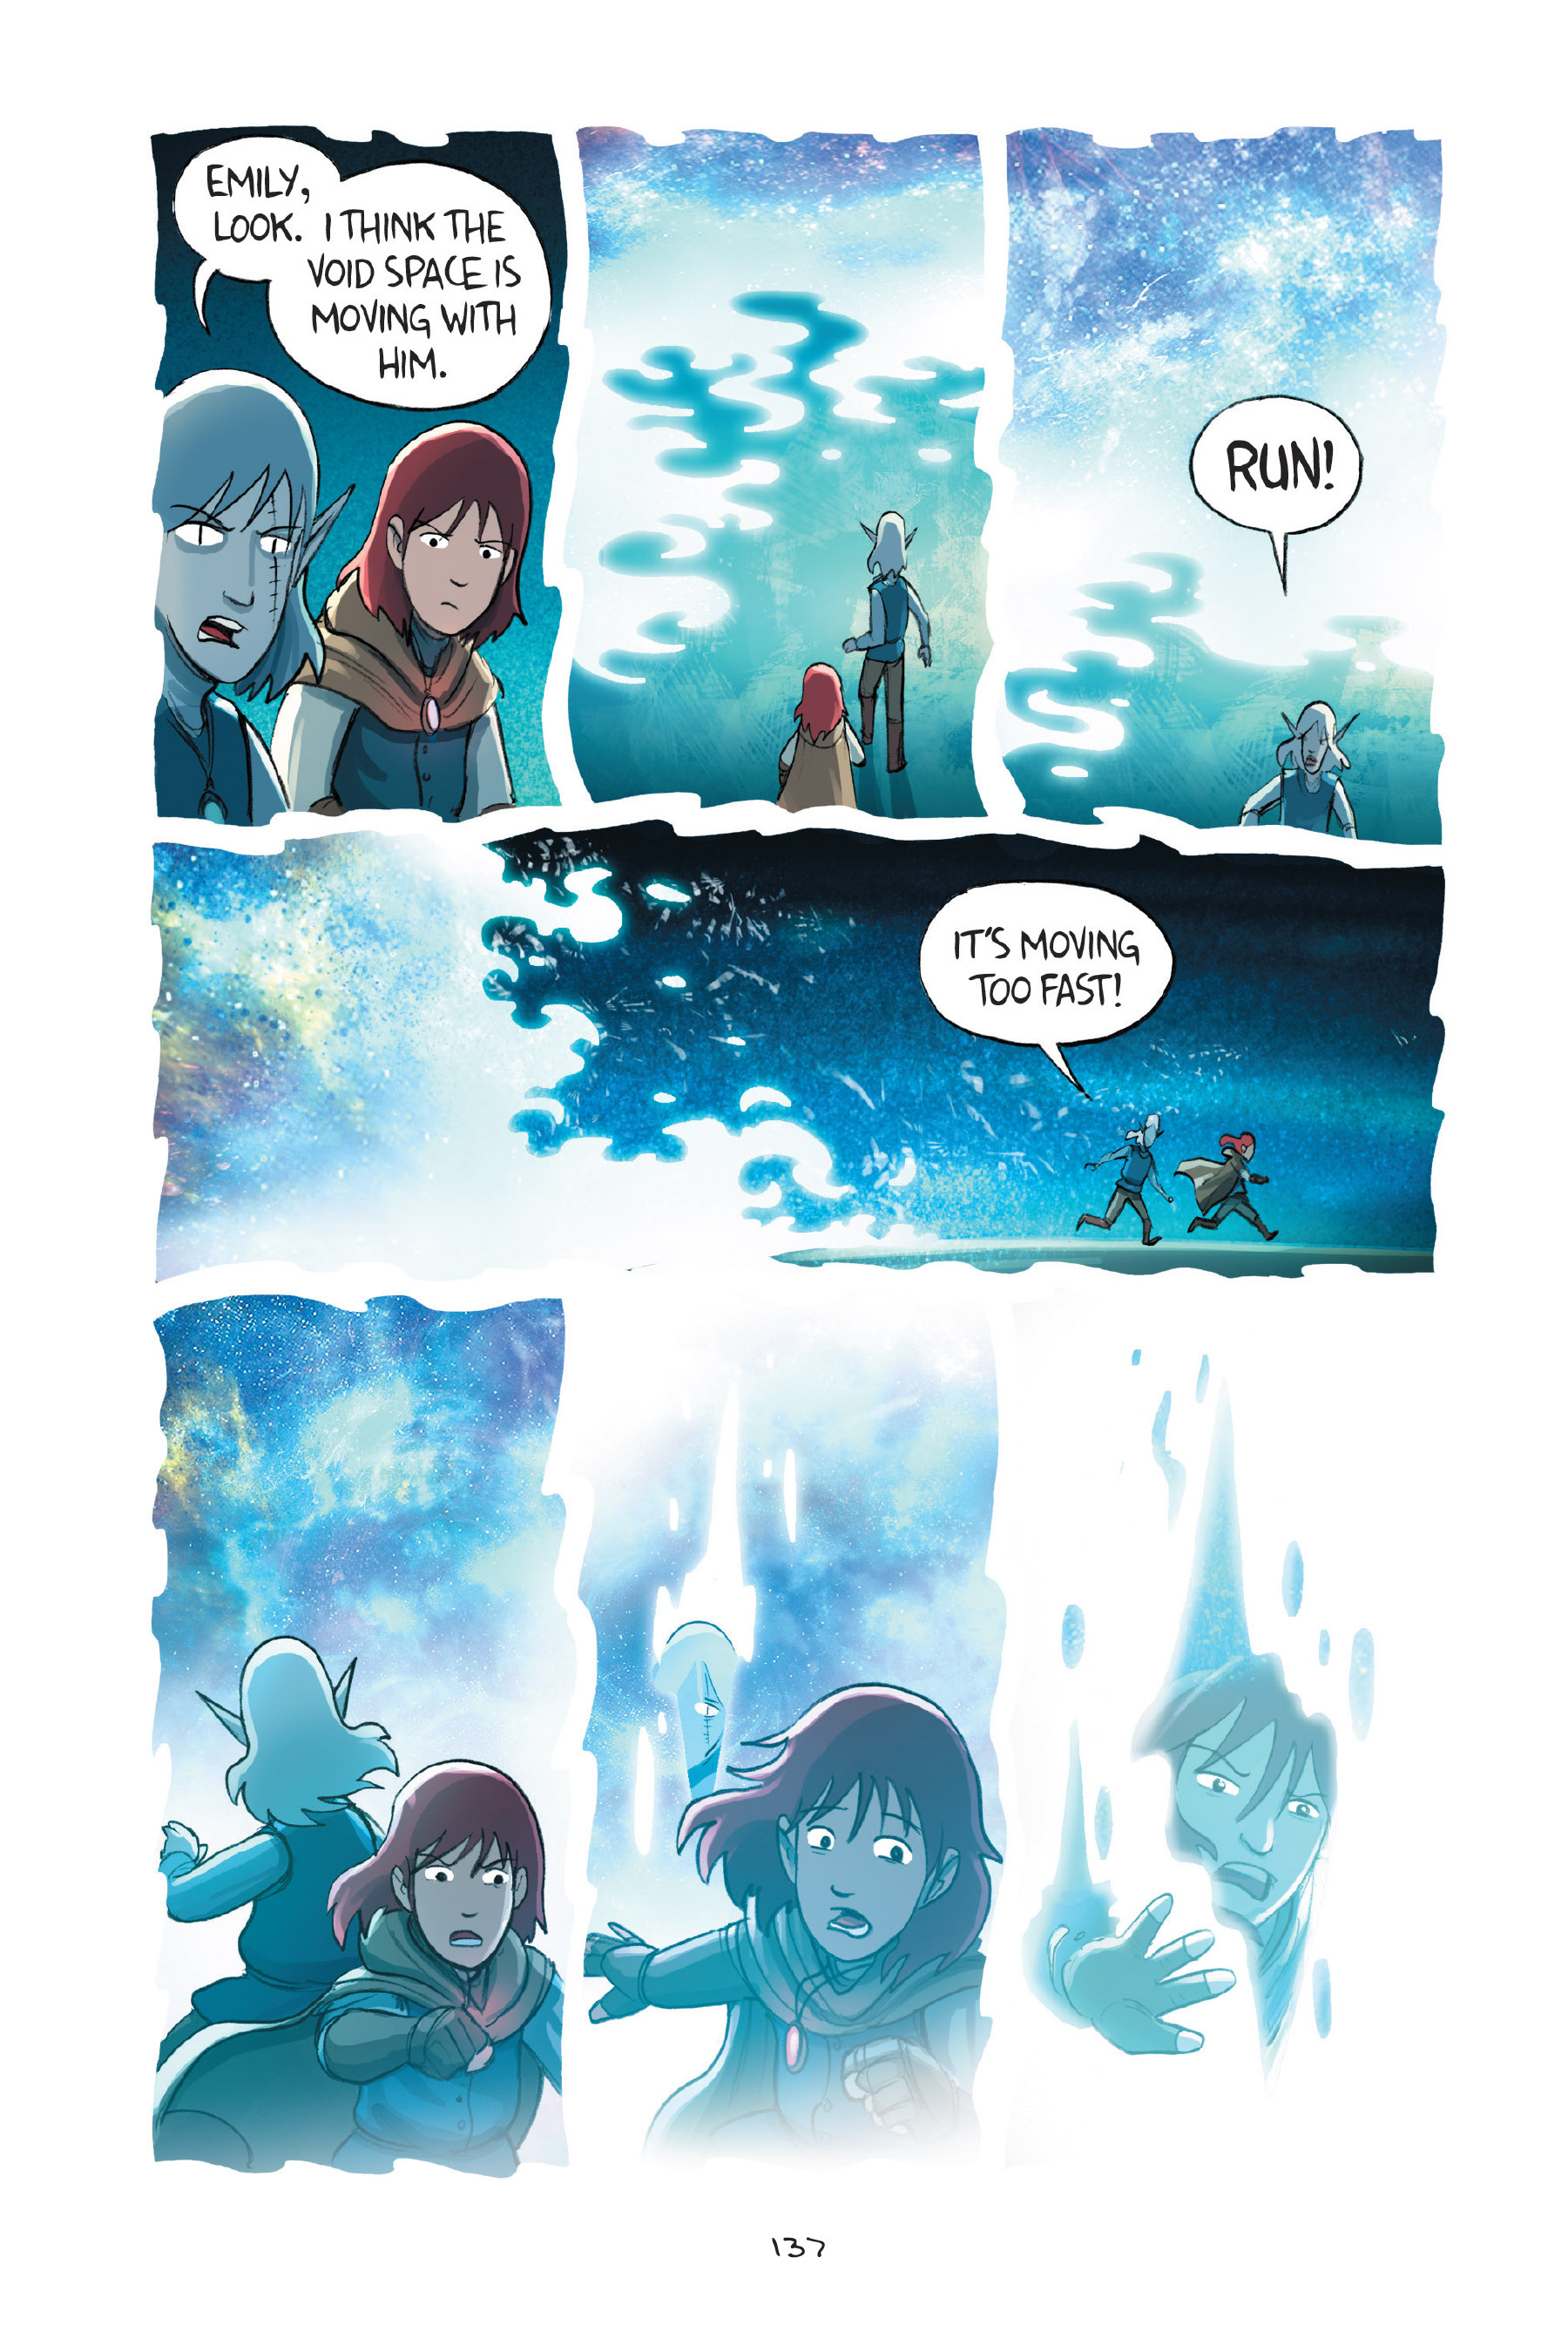 Read online Amulet comic -  Issue #7 - 137